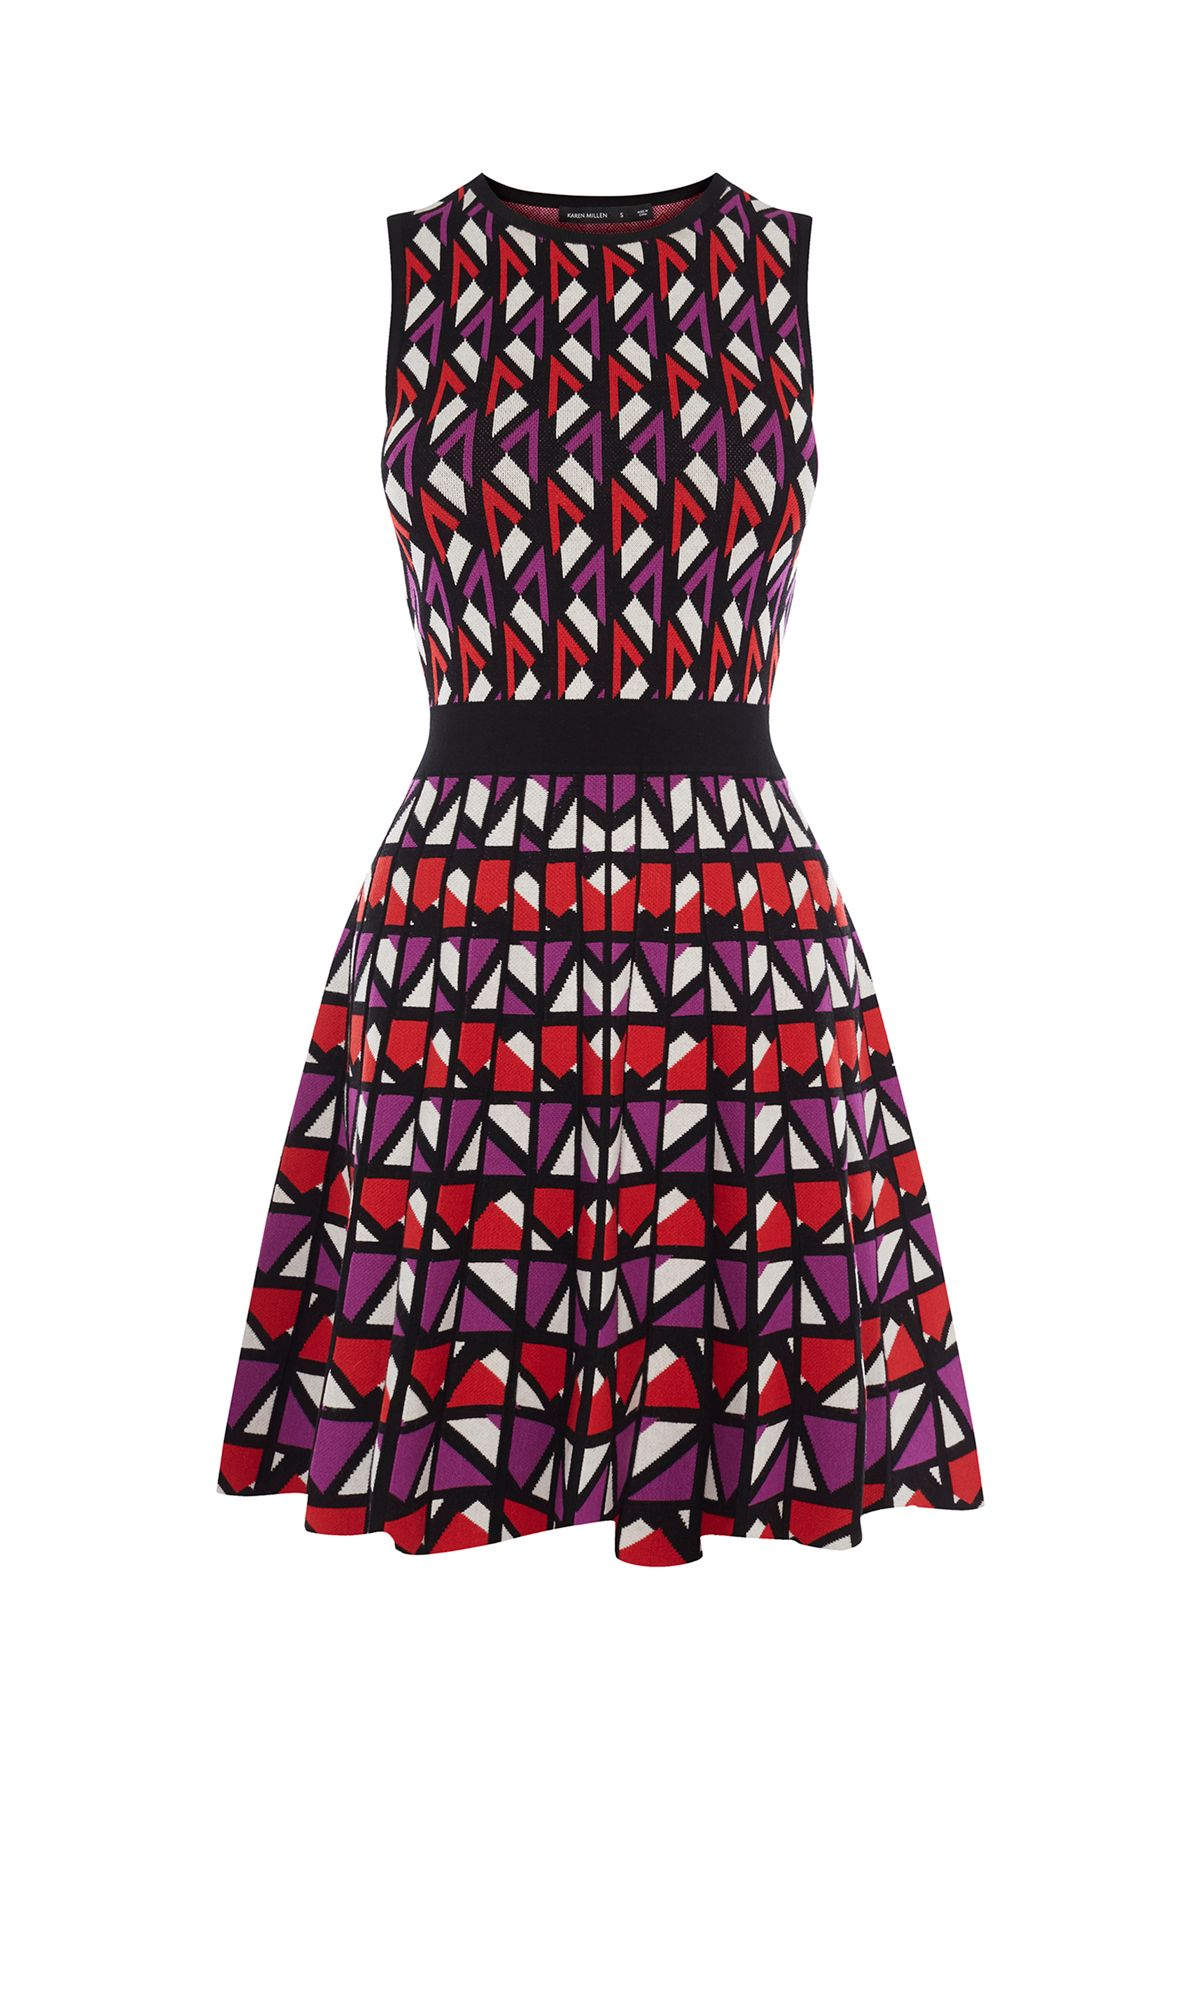 Karen Millen Geometric Knitted A-Line Dress, Multi-Coloured